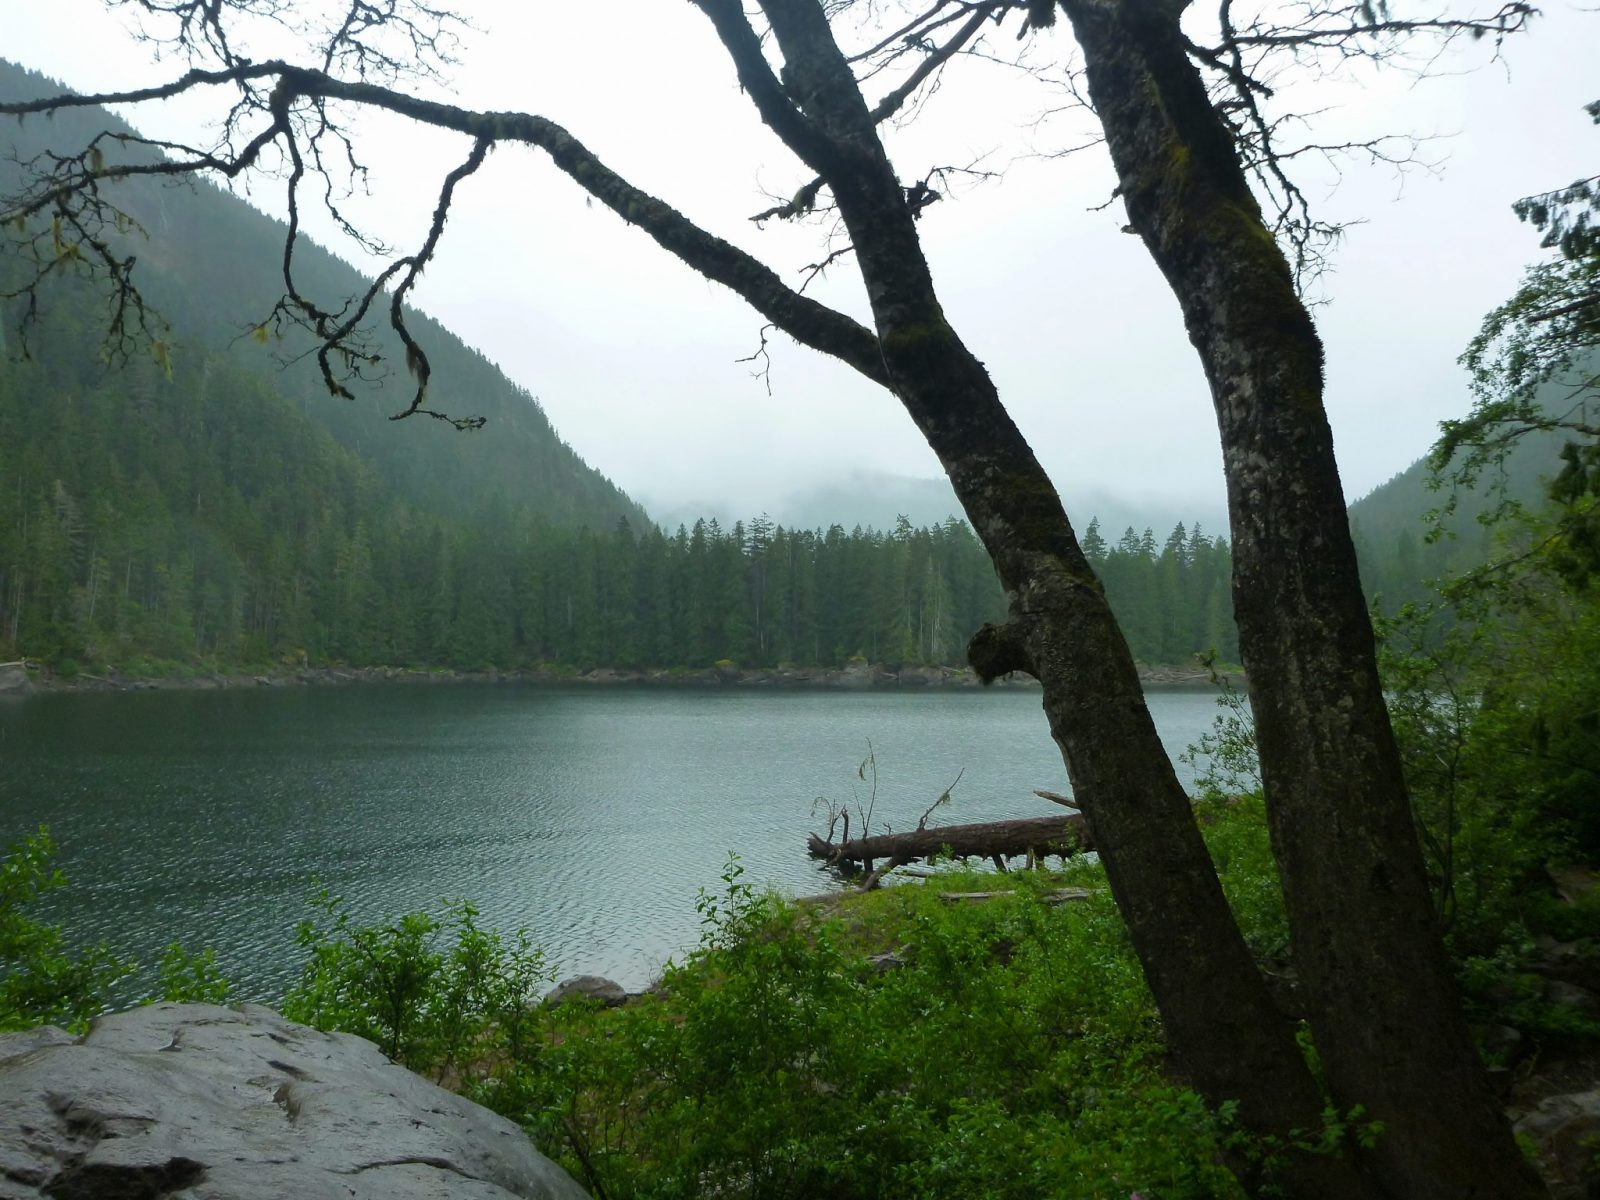 Lena Lake, An alpine lake on a foggy day, is surrounded by evergreen trees. In the foreground is a boulder, green bushes and a tree.